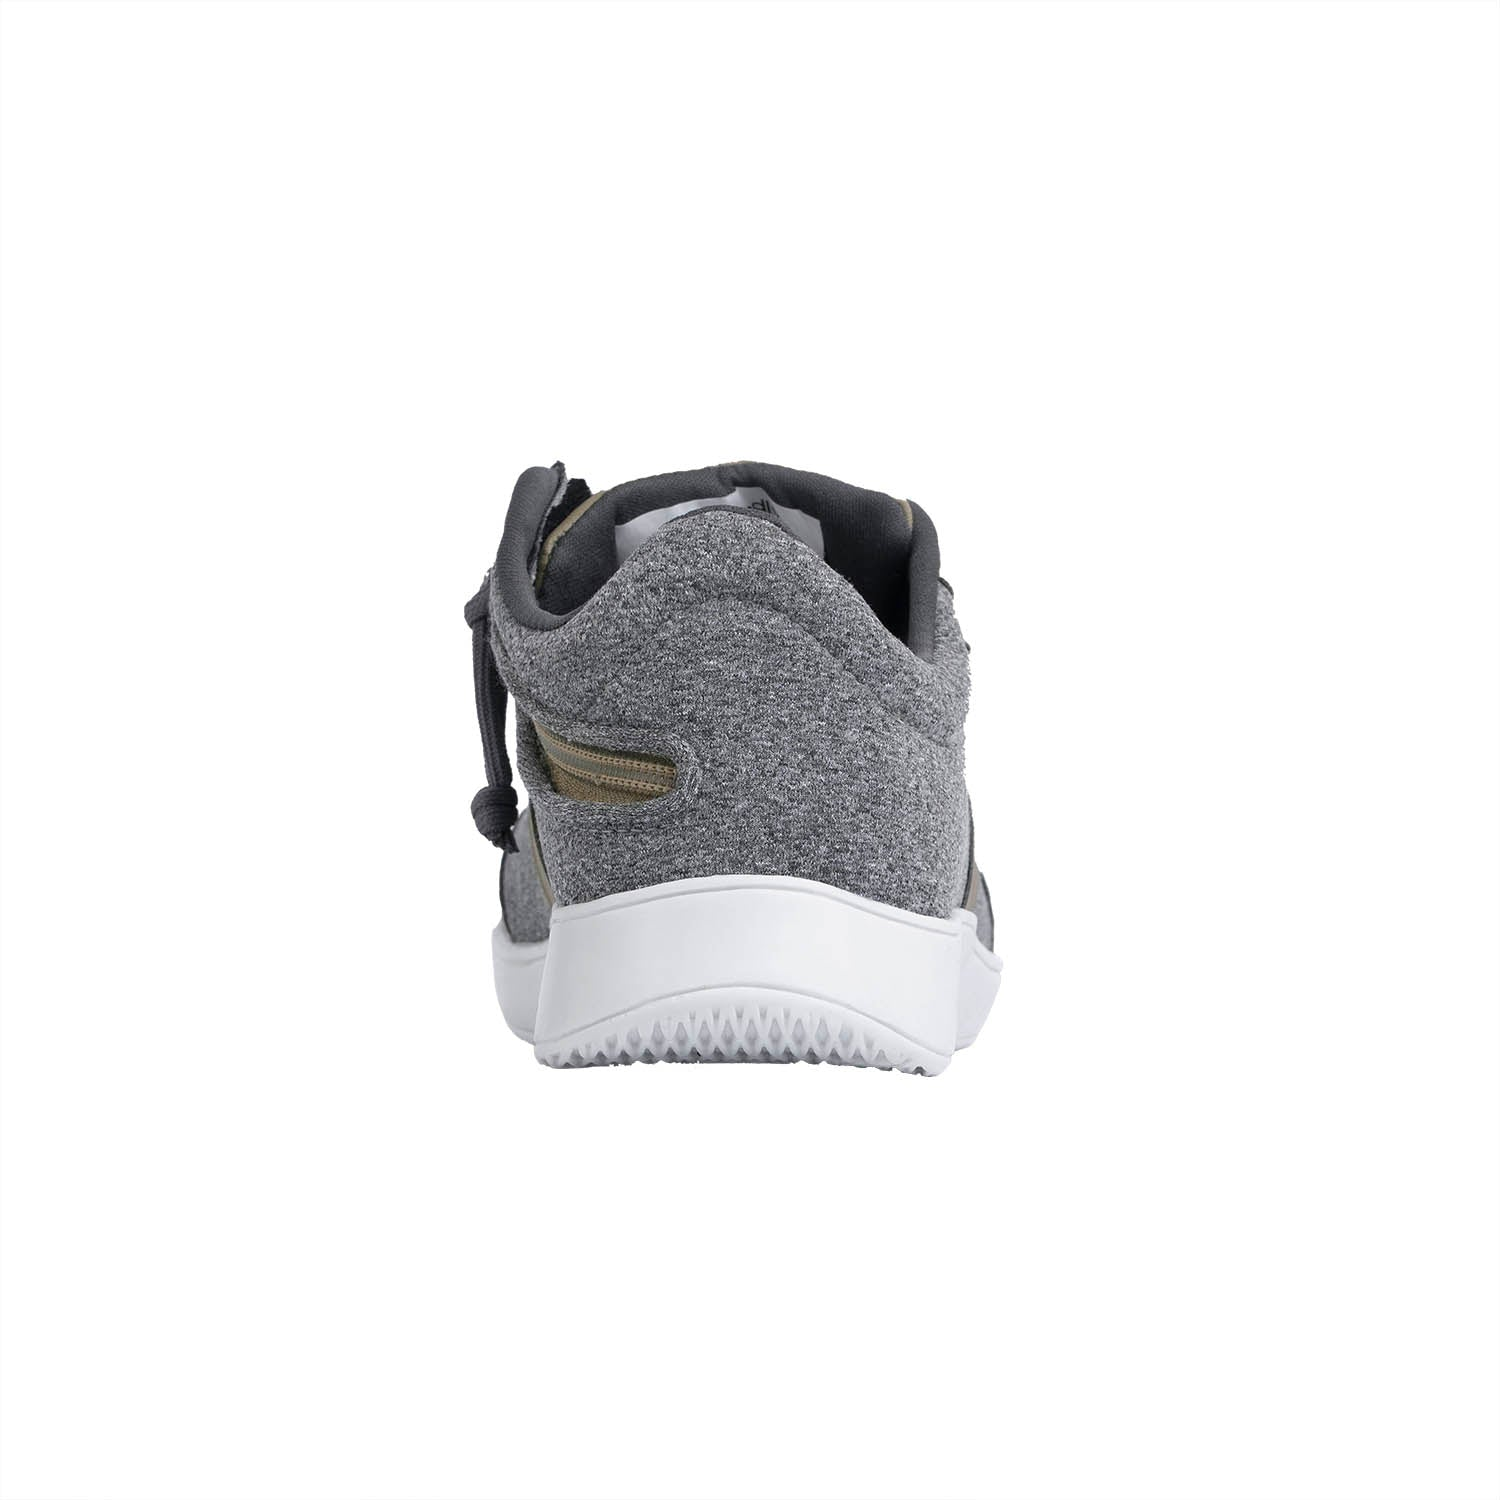 Women's Marlo Knit / Heather Grey & Tan Shoe